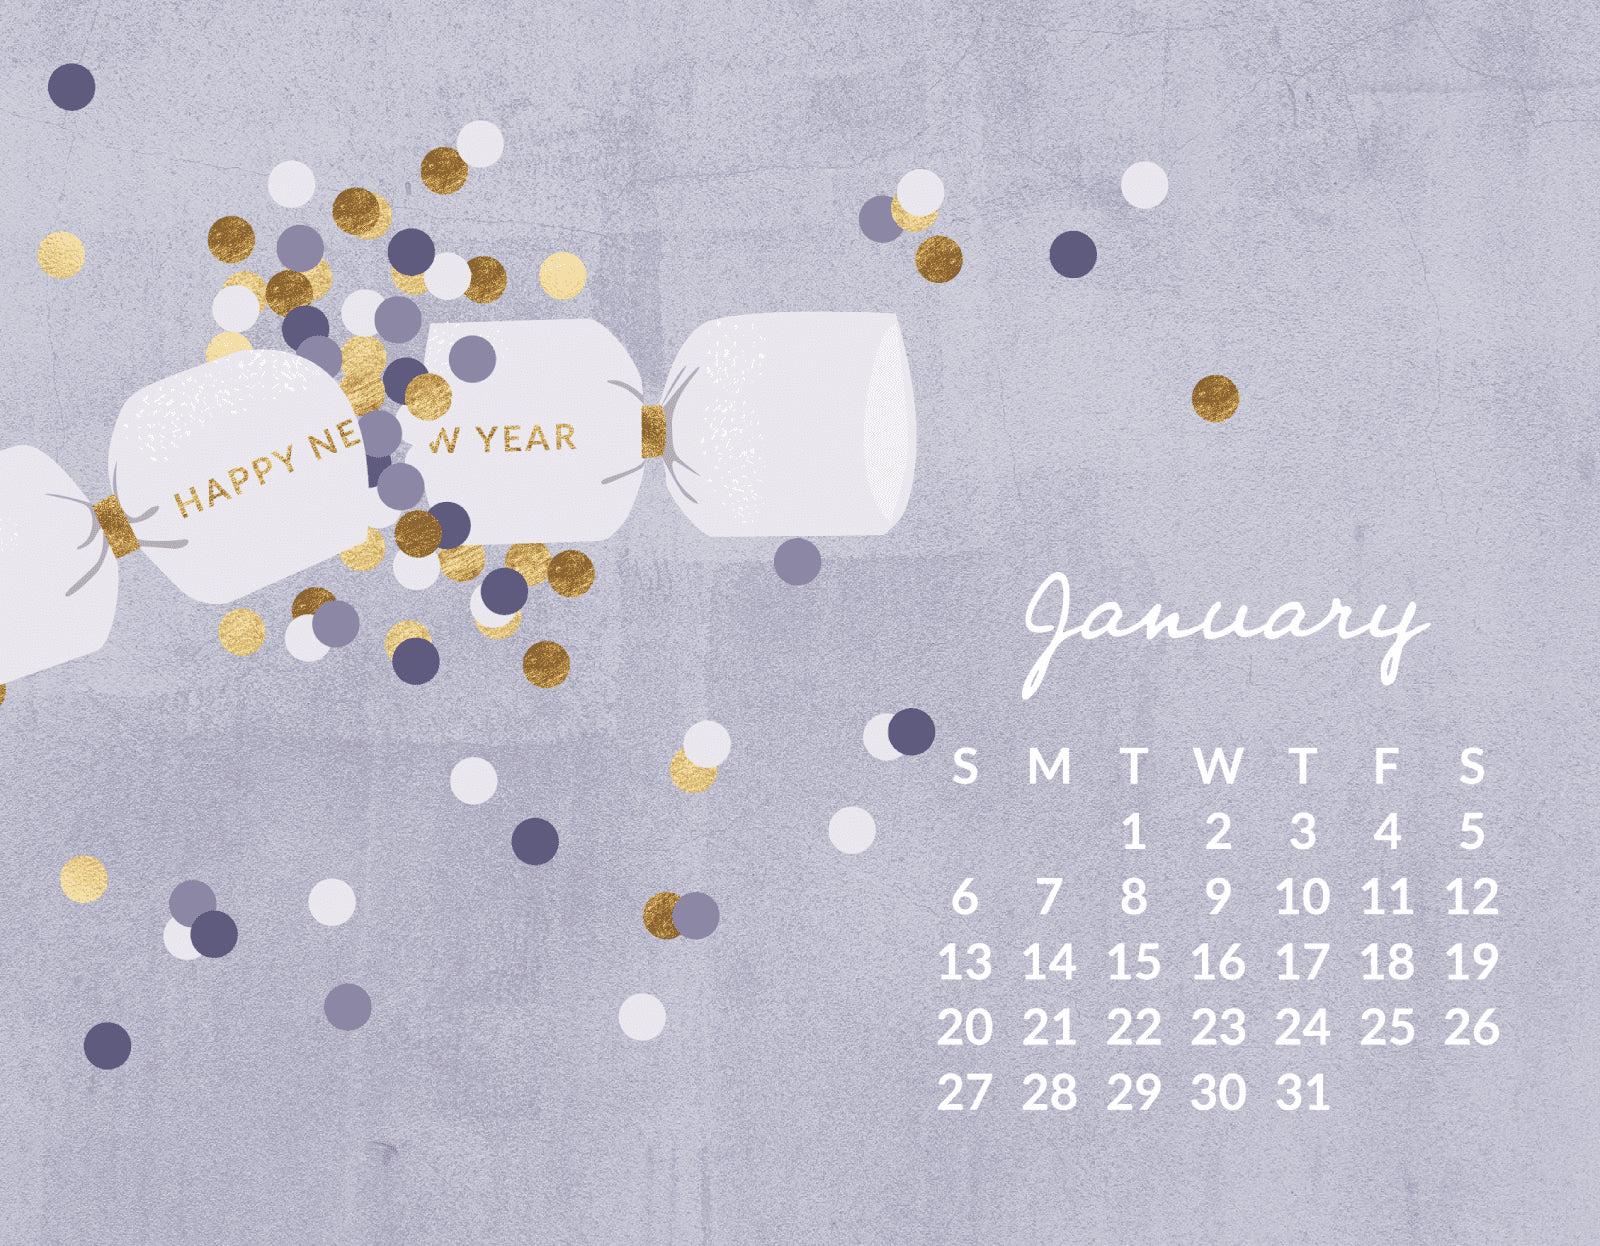 Free January 2019 Calendar Wallpaper